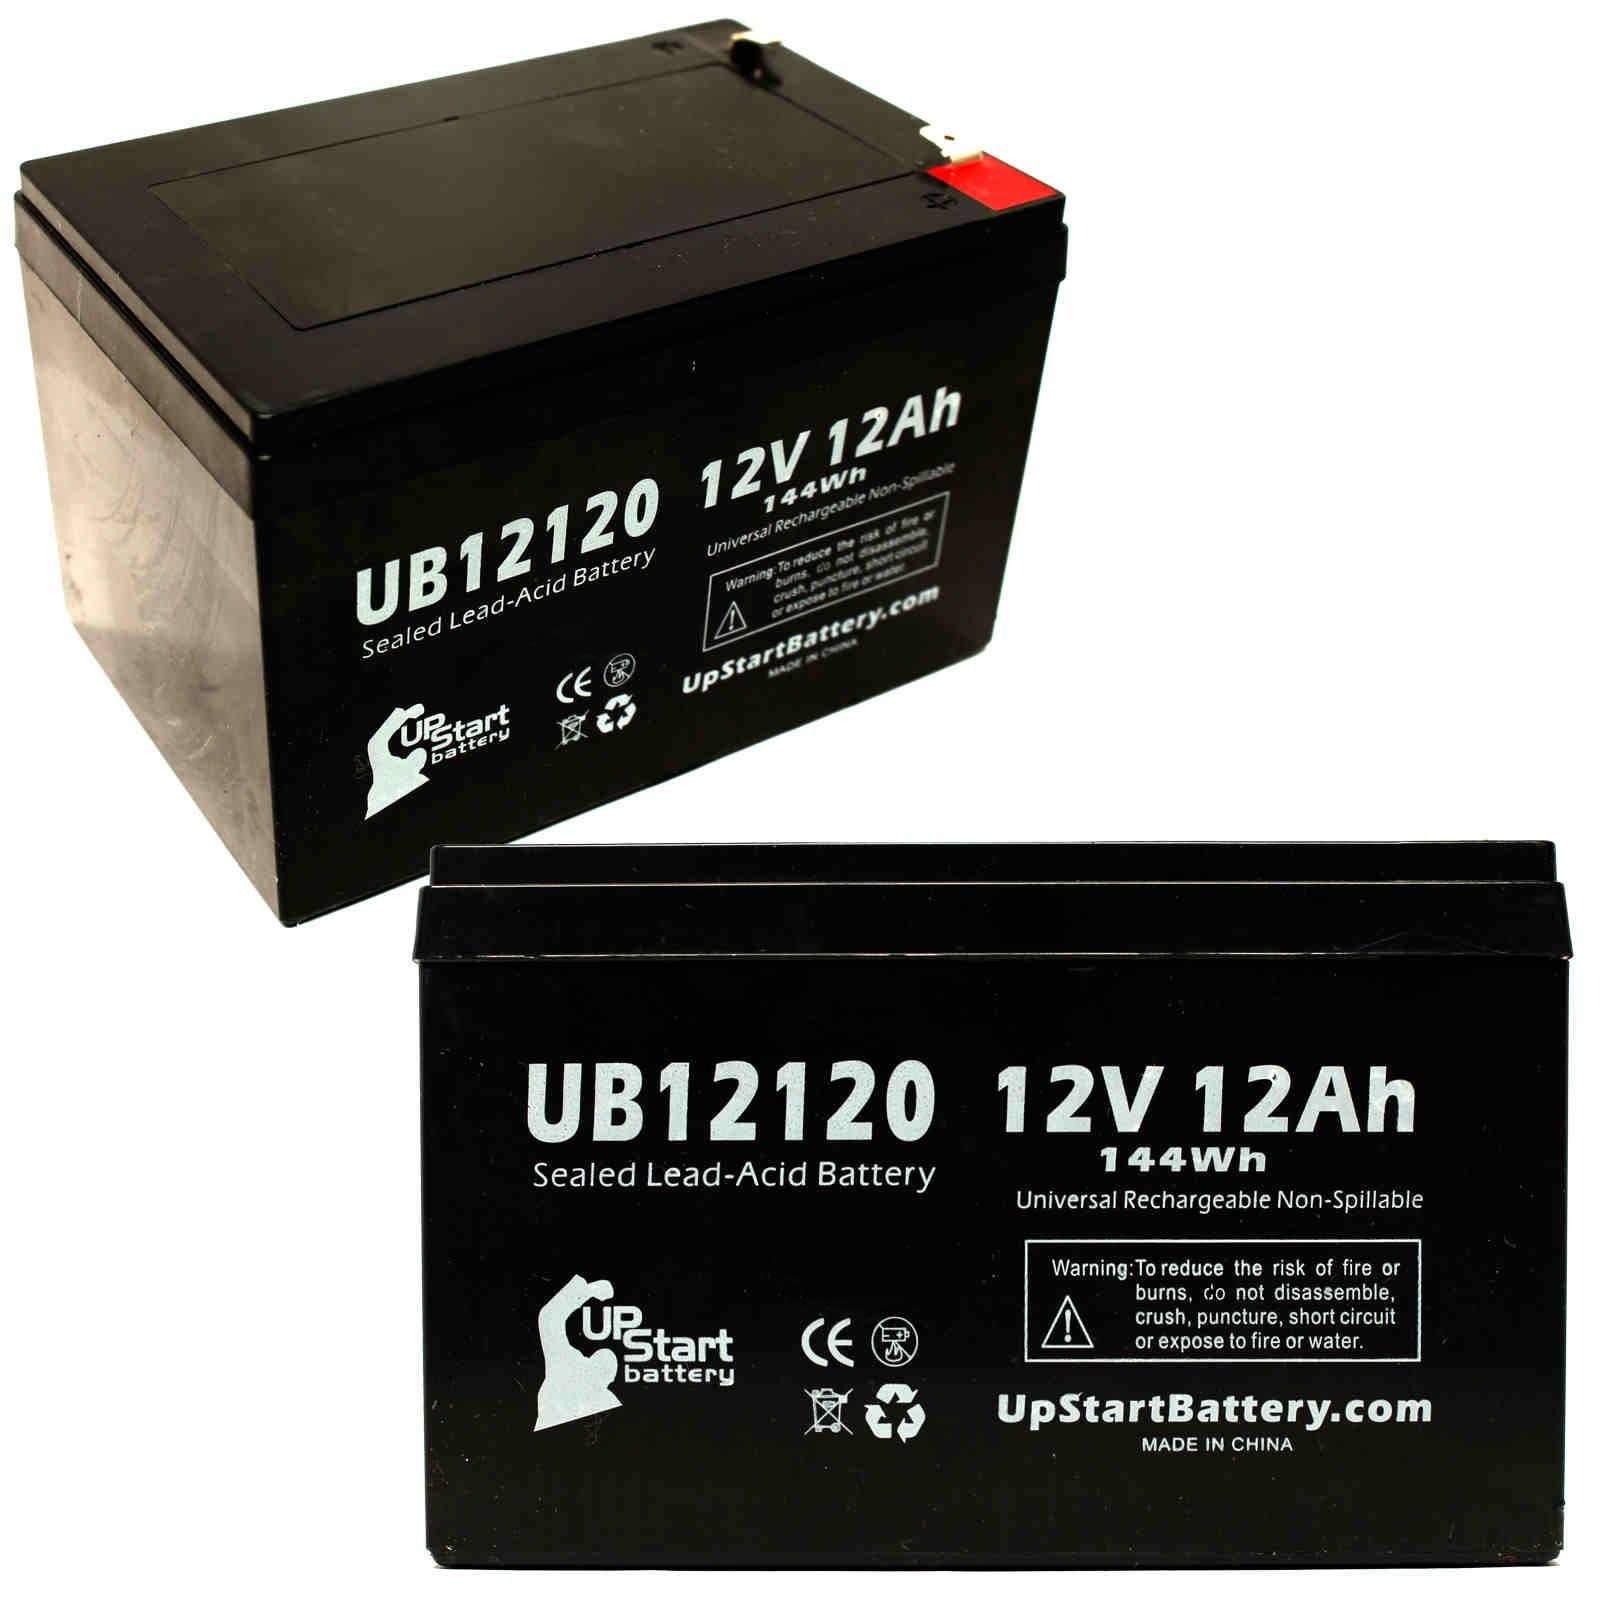 2x Pack - Pm Battery LA12120 Battery - Replacement UB12120 Universal Sealed Lead Acid Battery (12V, 12Ah, 12000mAh, F1 Terminal, AGM, SLA) - Includes 4 F1 to F2 Terminal Adapters - APC SMART-UPS 1000